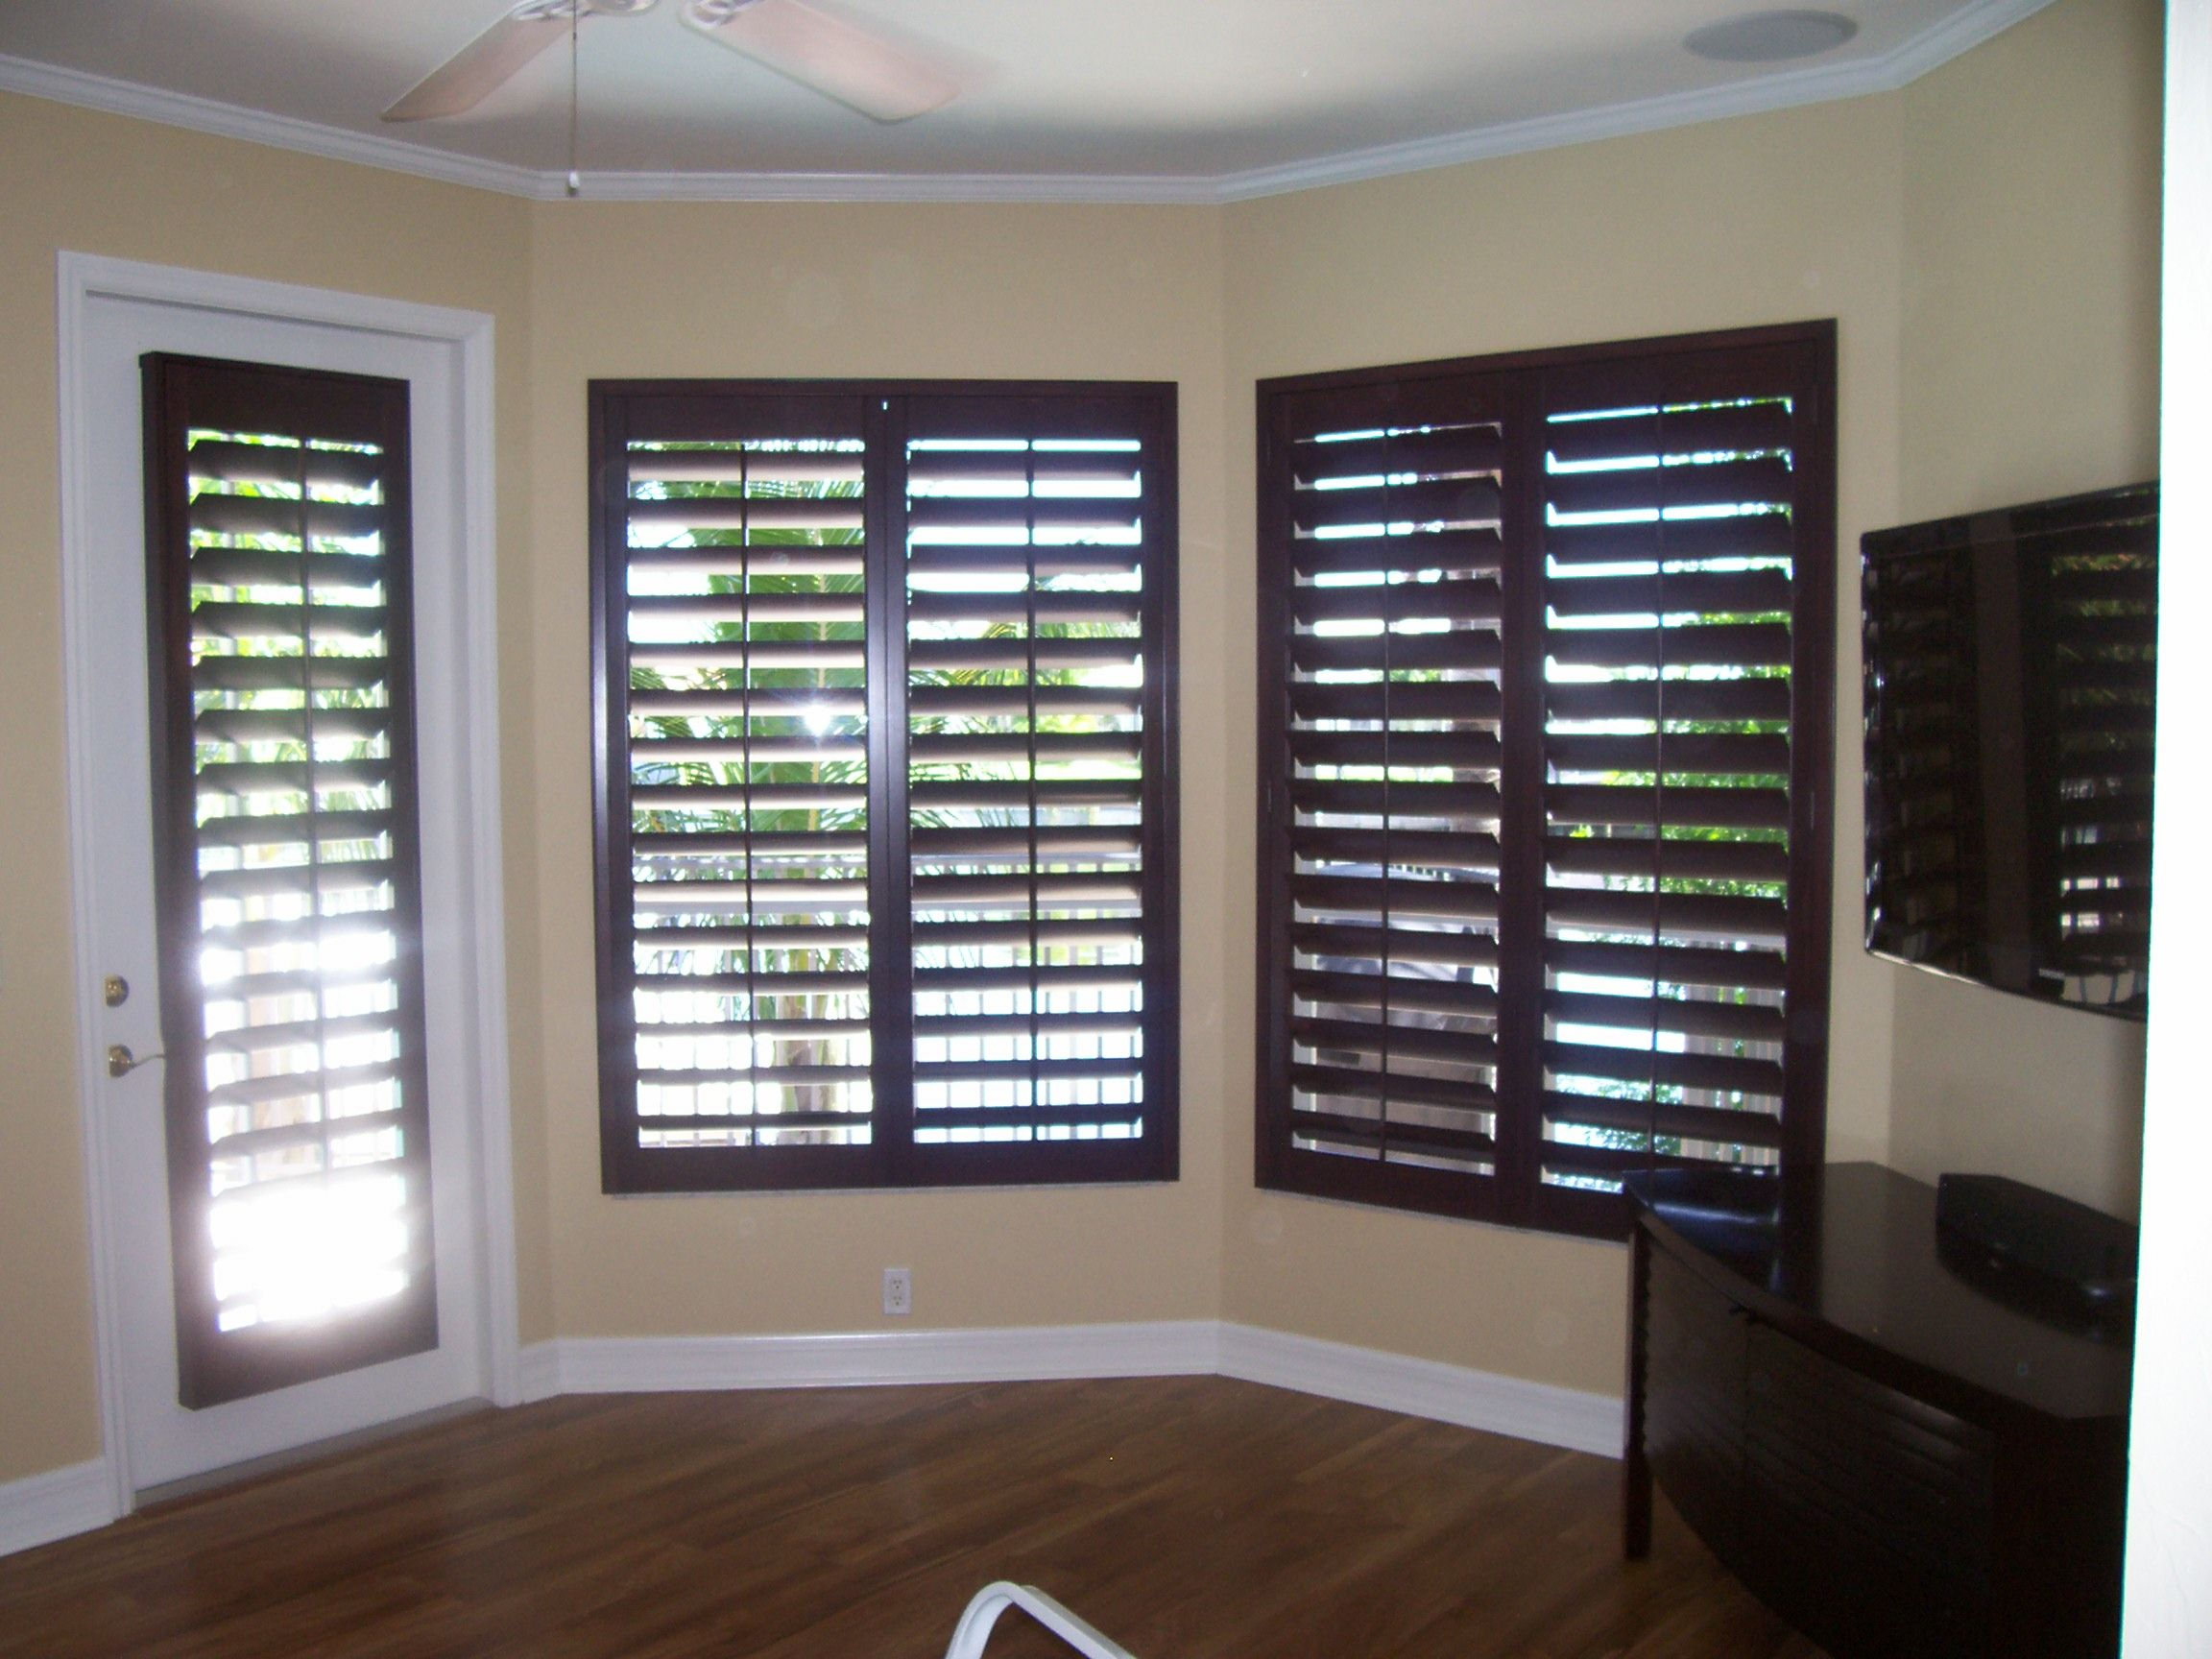 Plantation blinds for interesting interior home design cozy wood tile flooring with white baseboard and dark plantation blinds plus crown molding